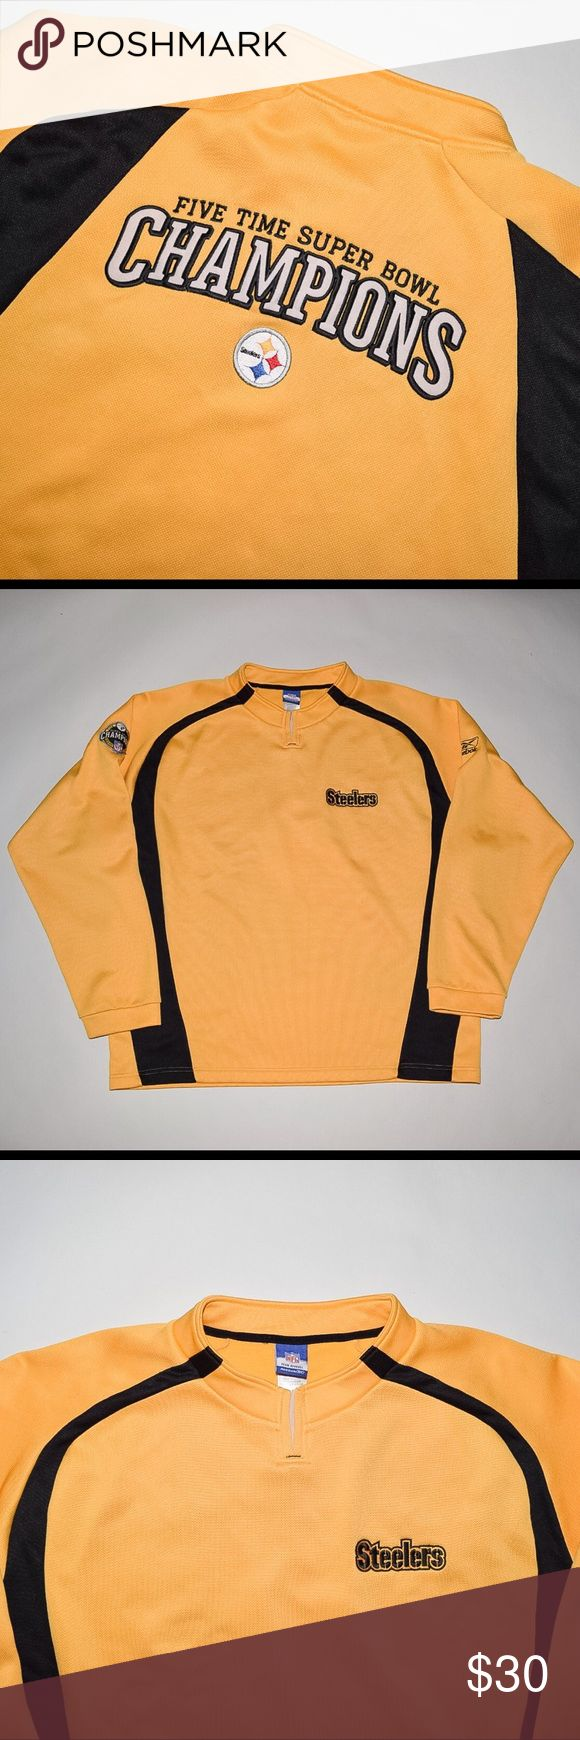 Reebok NFL Pittsburgh Steelers Champions Sweater Brand: Reebok NFL Team Apparel Item name: Pittsburgh Steelers 5 Time Champions Pullover Sweater Jersey Color: Gold / Black Condition: This is a pre-owned item. There is a very small stain on the right sleeve below the patch but otherwise it is excellent condition with no rips, holes, etc. Comes from a smoke free household. Size: XL Material: 100% polyester  Measurements:  Pit to Pit - 28 inches Neckline to bottom - 31 inches Reebok Sweaters…